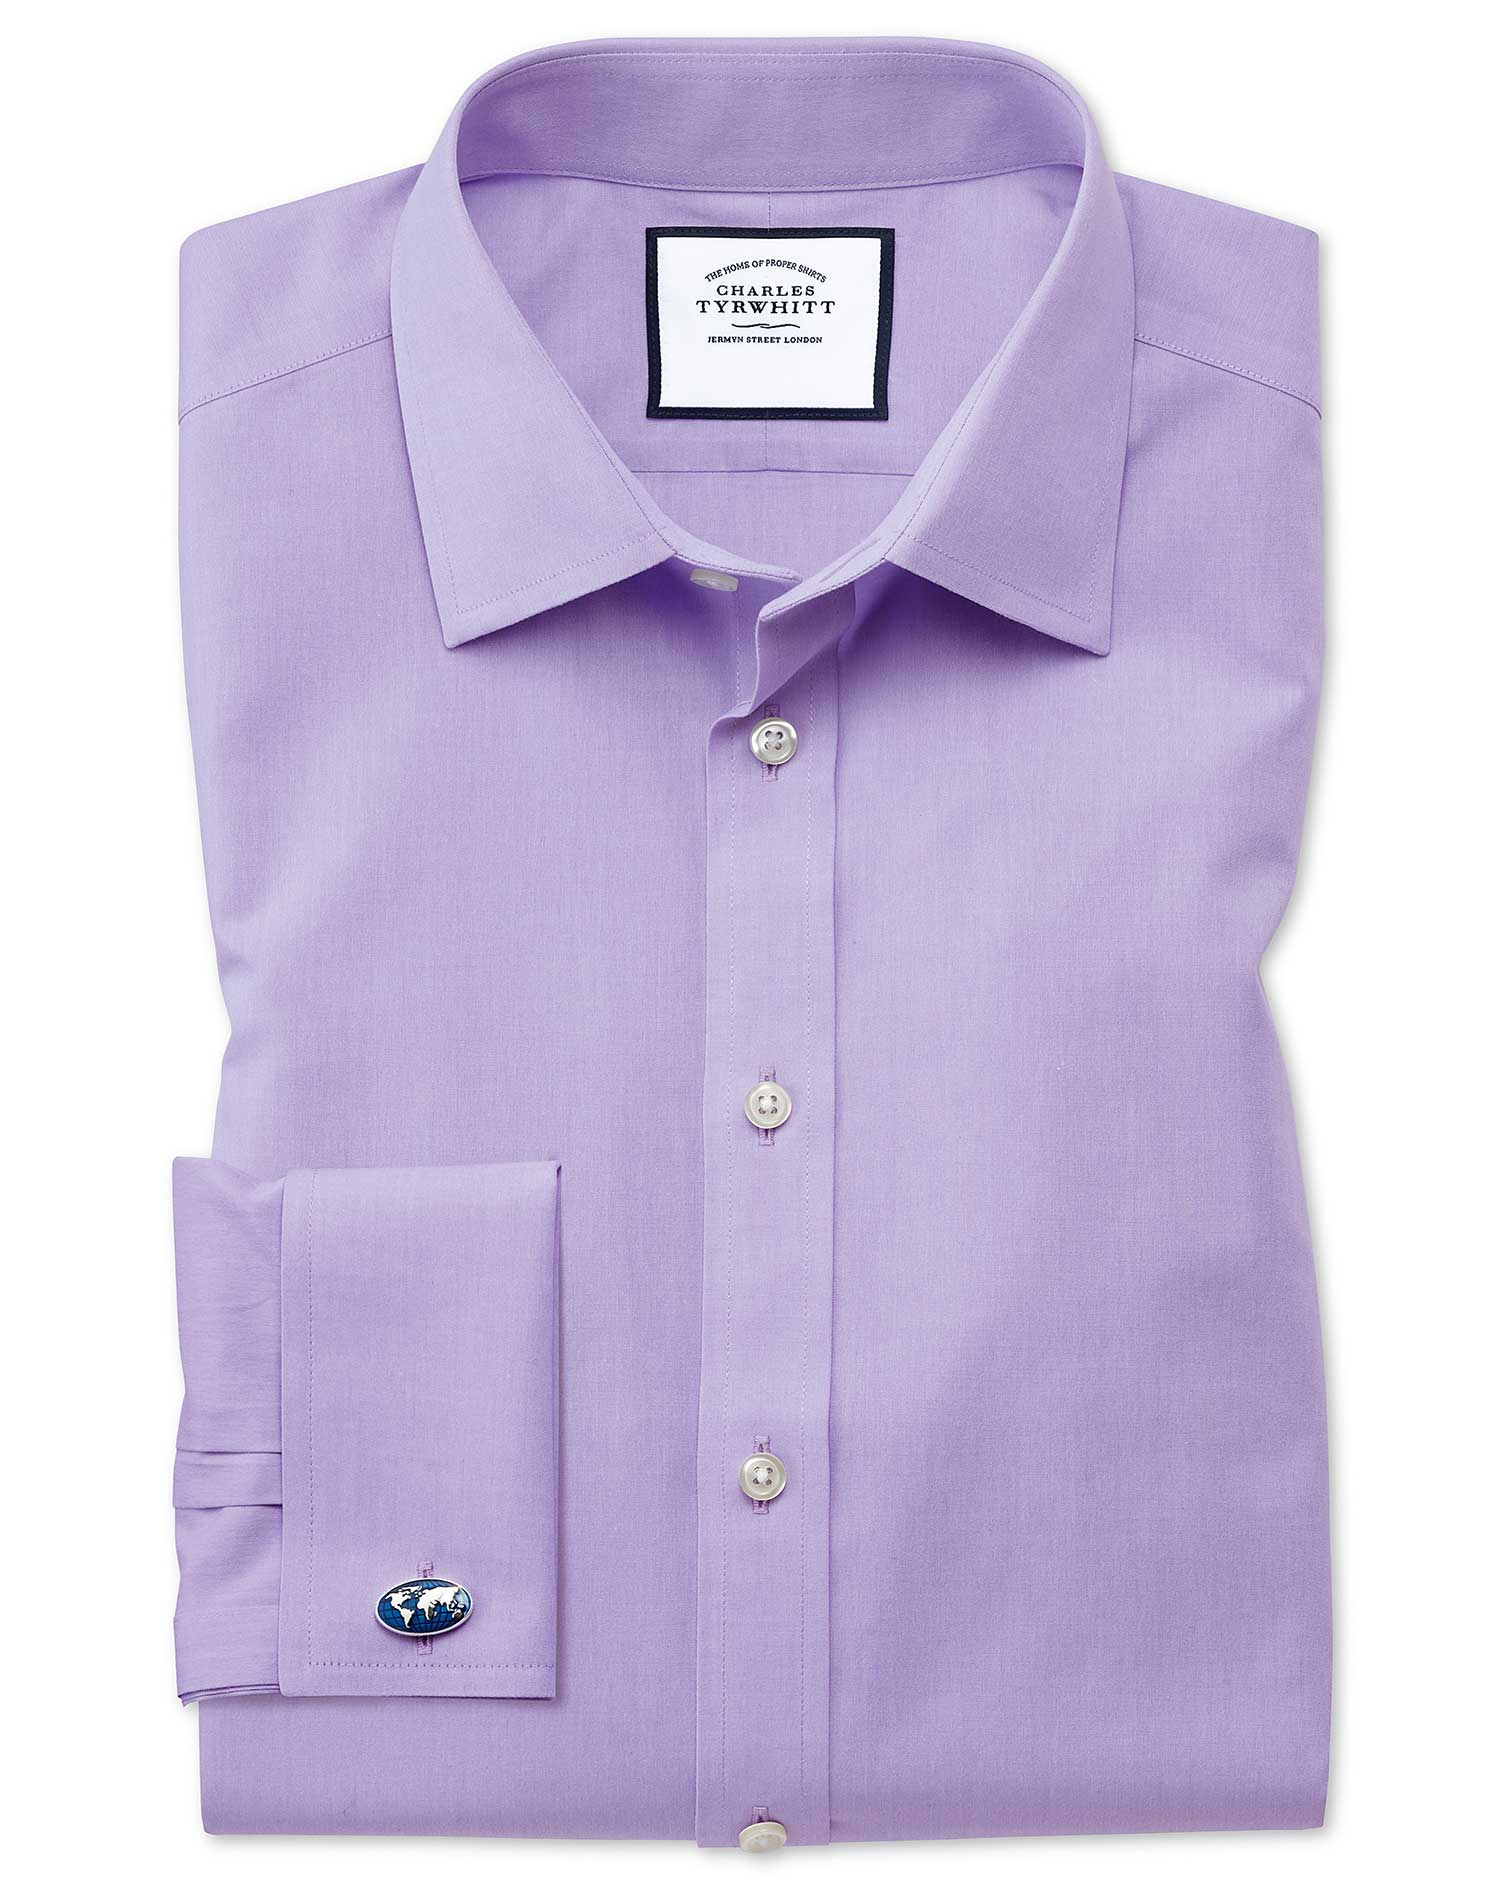 Classic Fit Non-Iron Poplin Lilac Cotton Formal Shirt Single Cuff Size 15.5/34 by Charles Tyrwhitt